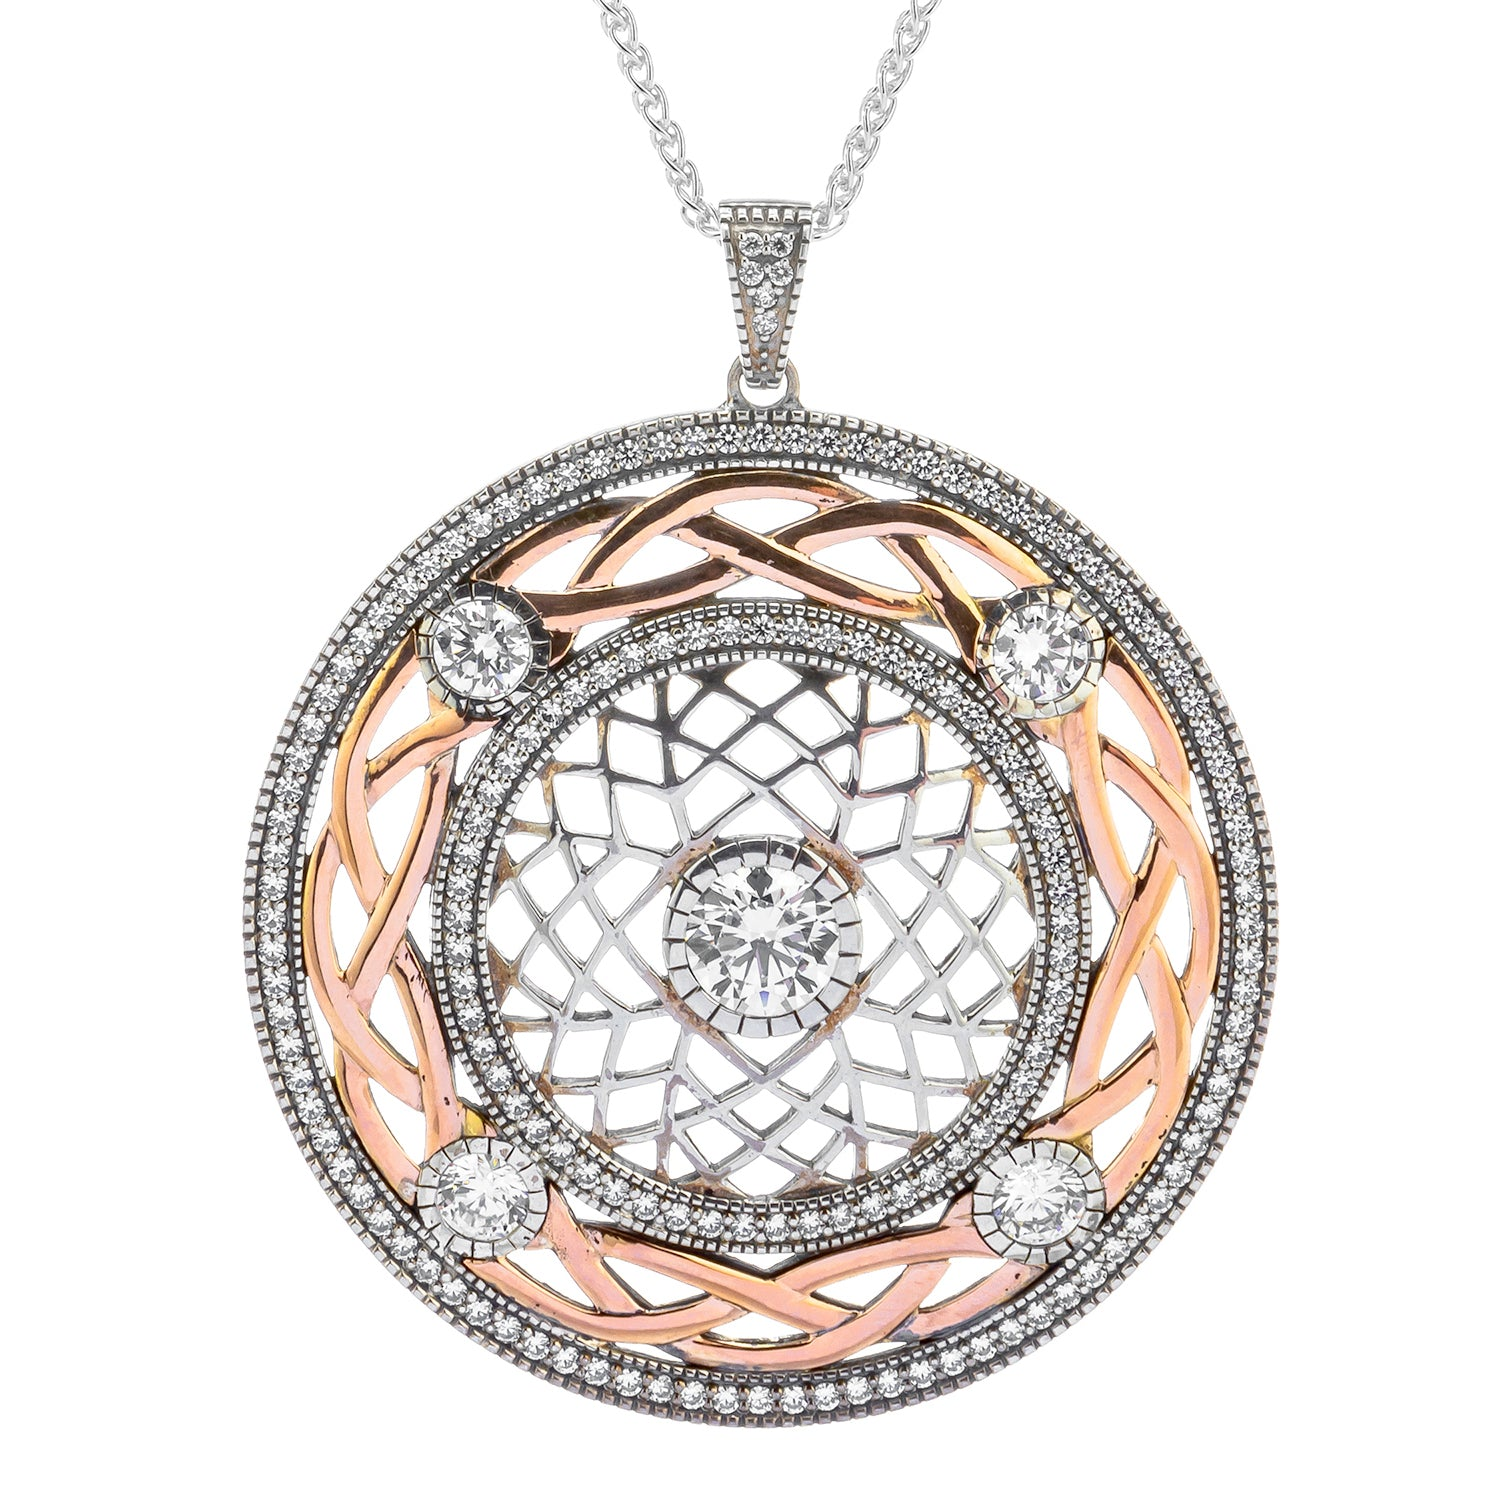 Pendant Oxidized 10k Rose CZ Brave Heart Large Pendant from welch and company jewelers near syracuse ny